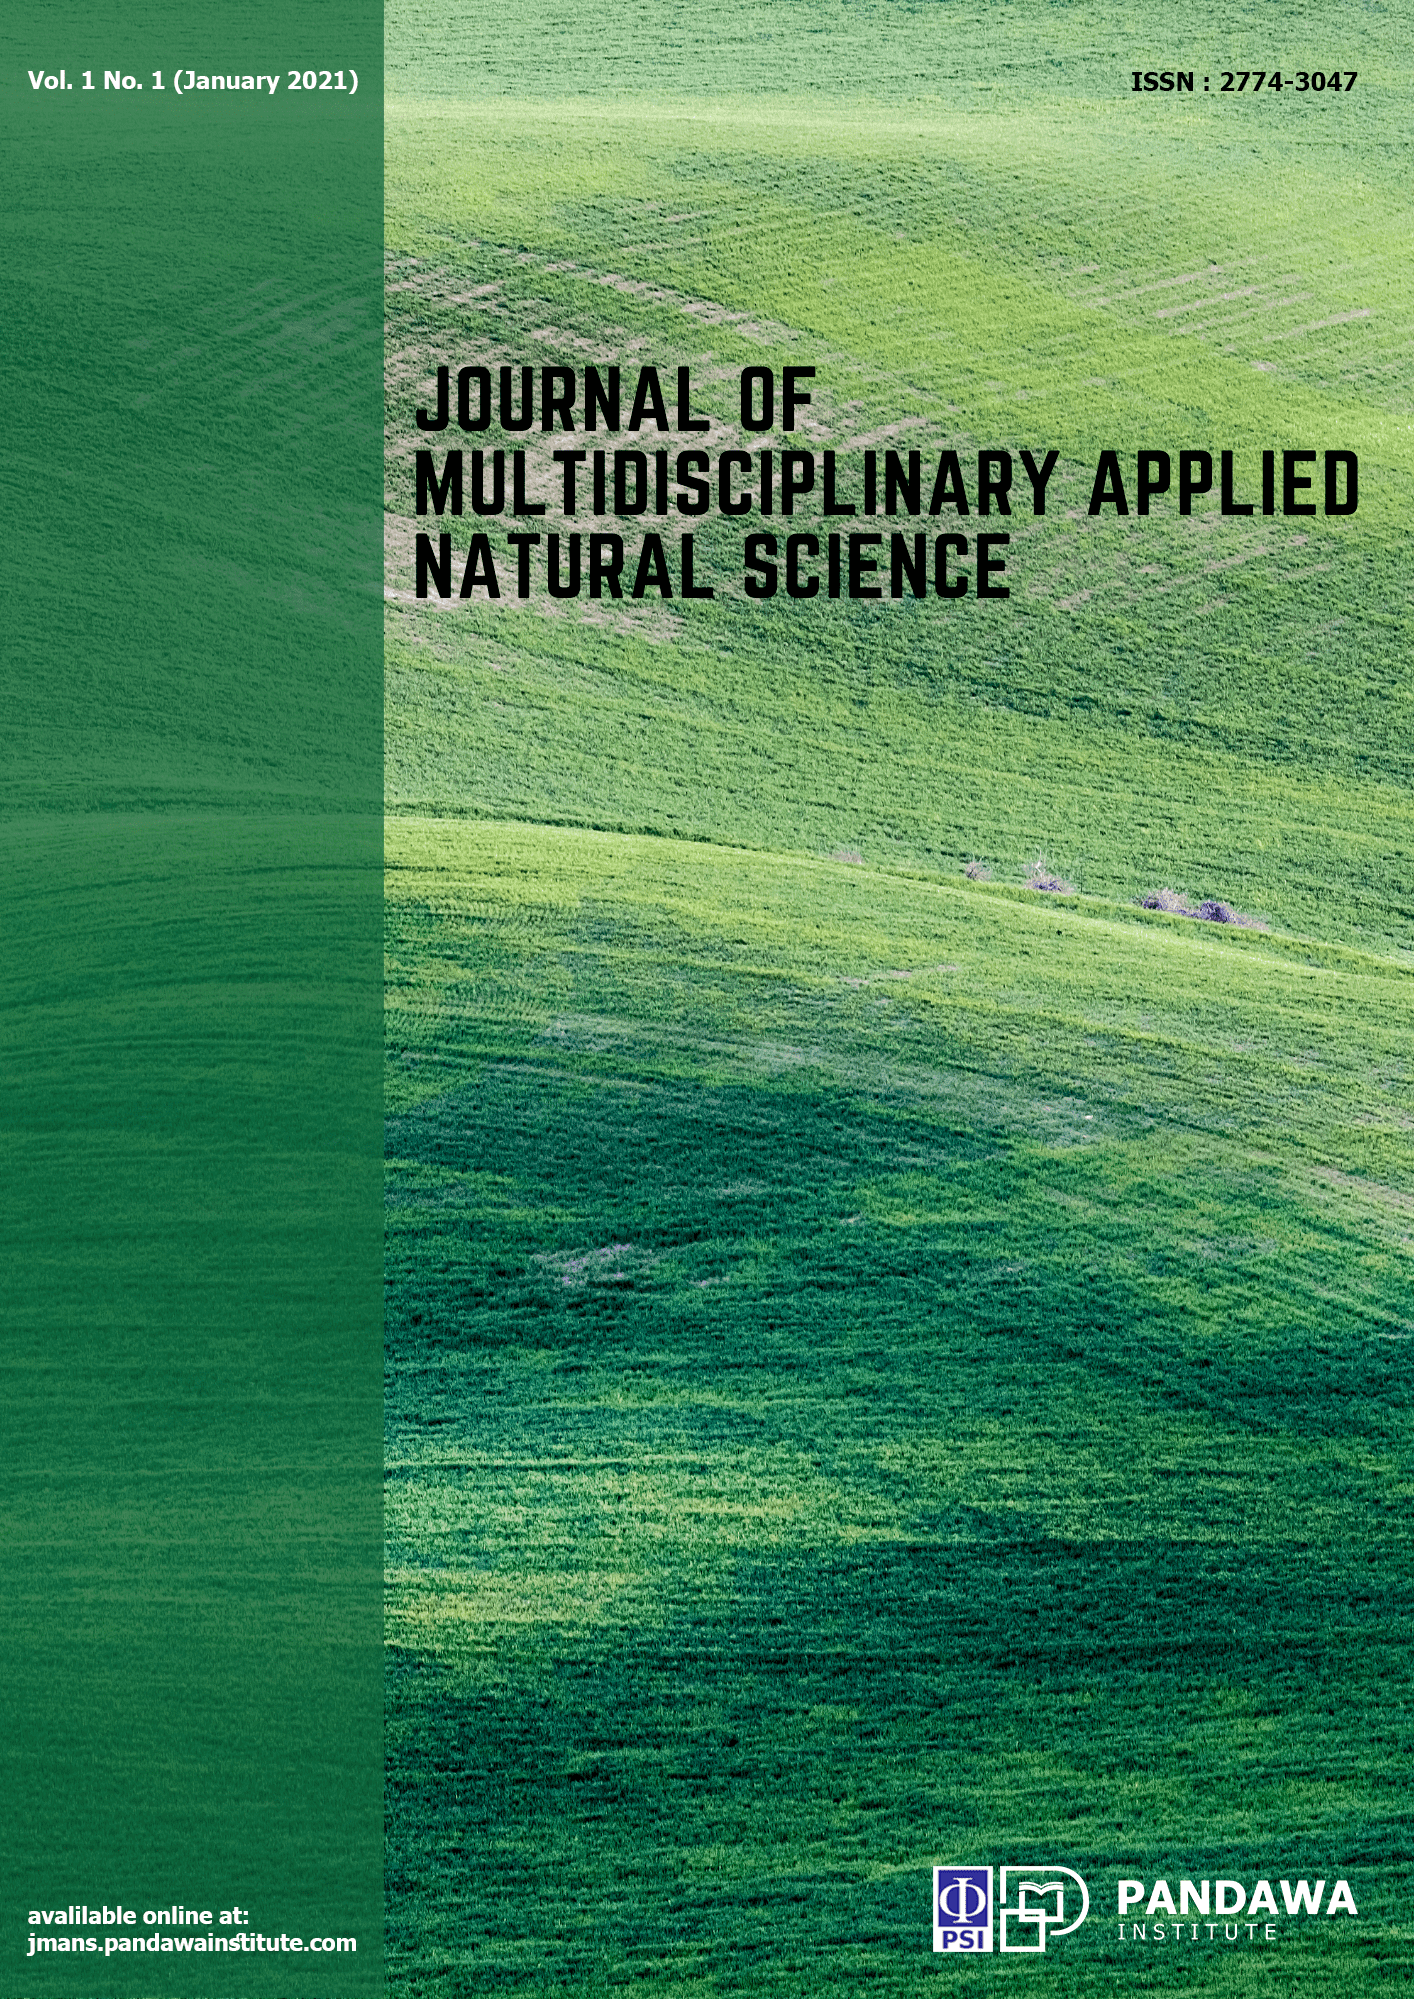 View Vol. 1 No. 1 (2021): Journal of Multidisciplinary Applied Natural Science